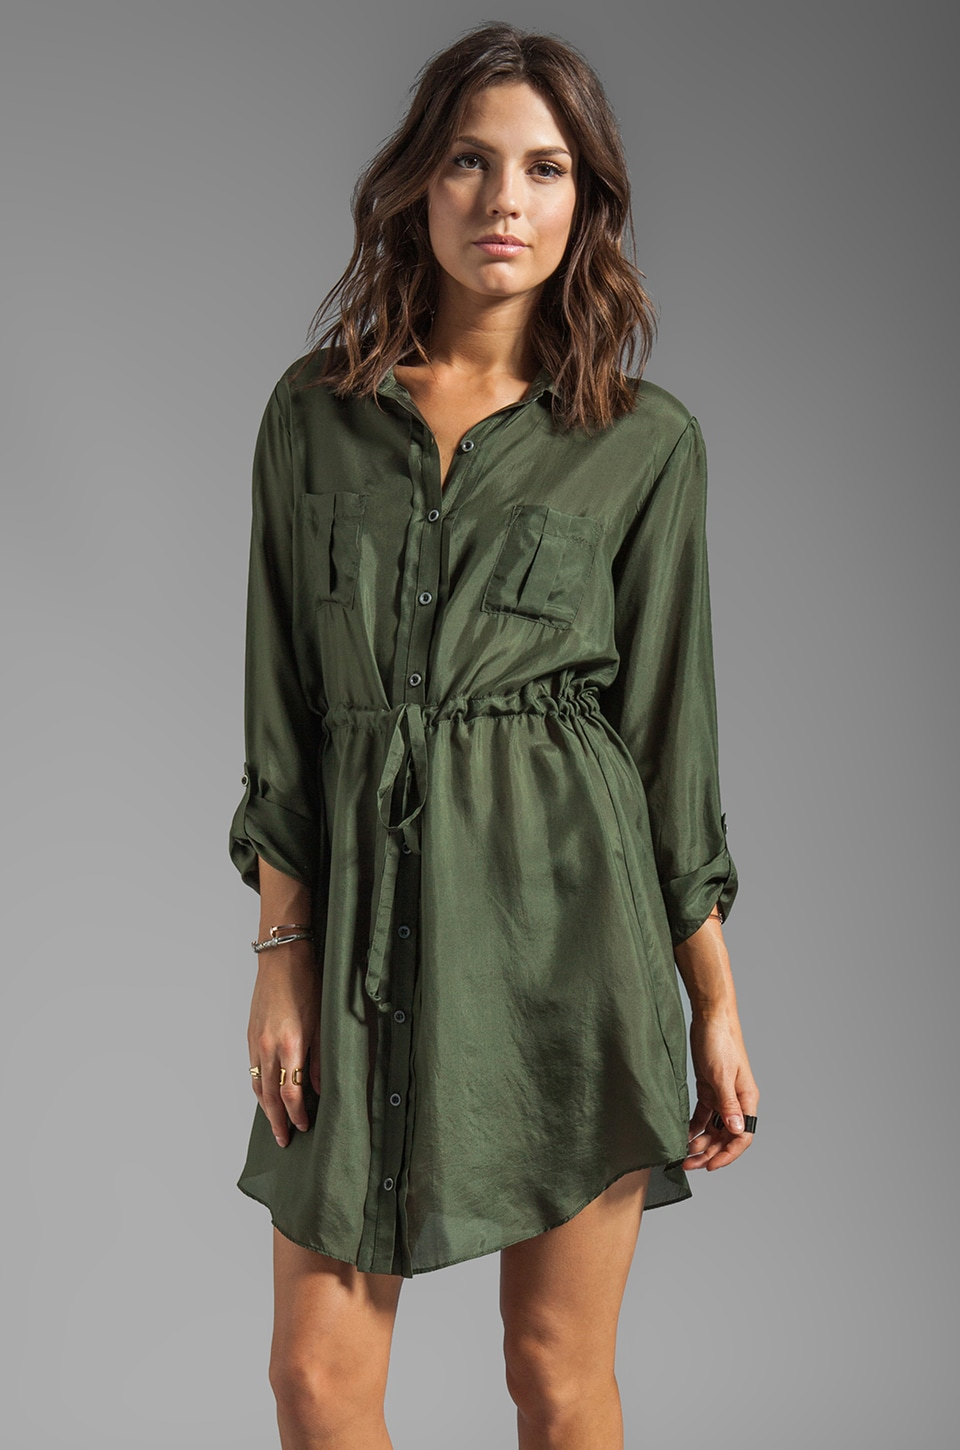 Graham & Spencer Washed Silk Shirt Dress in Army